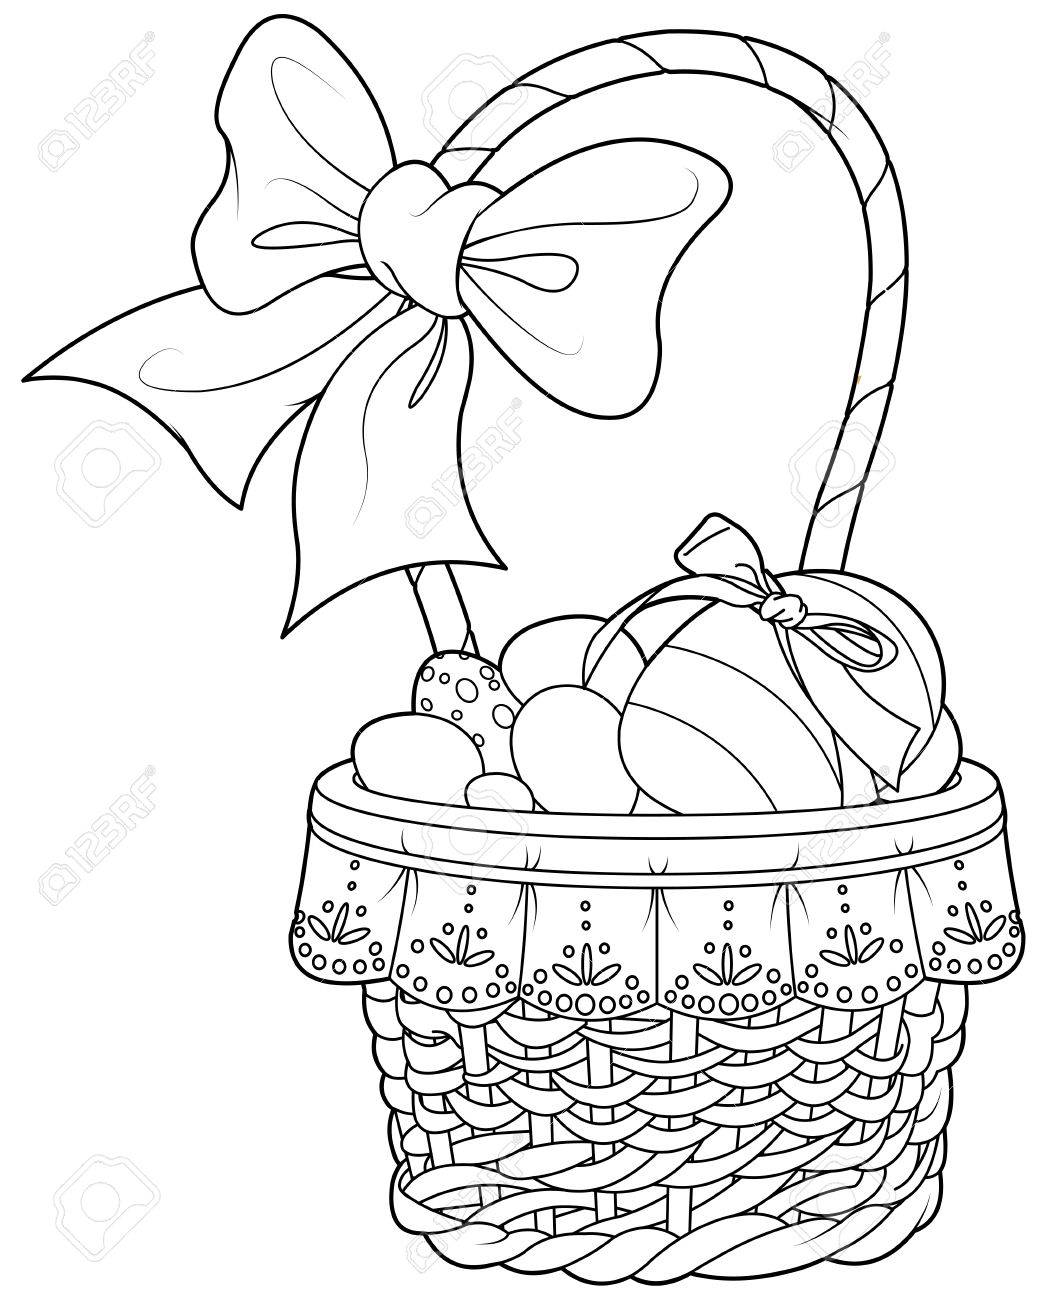 Coloring Page Pretty Easter Basket Full Of Eggs Stock Vector